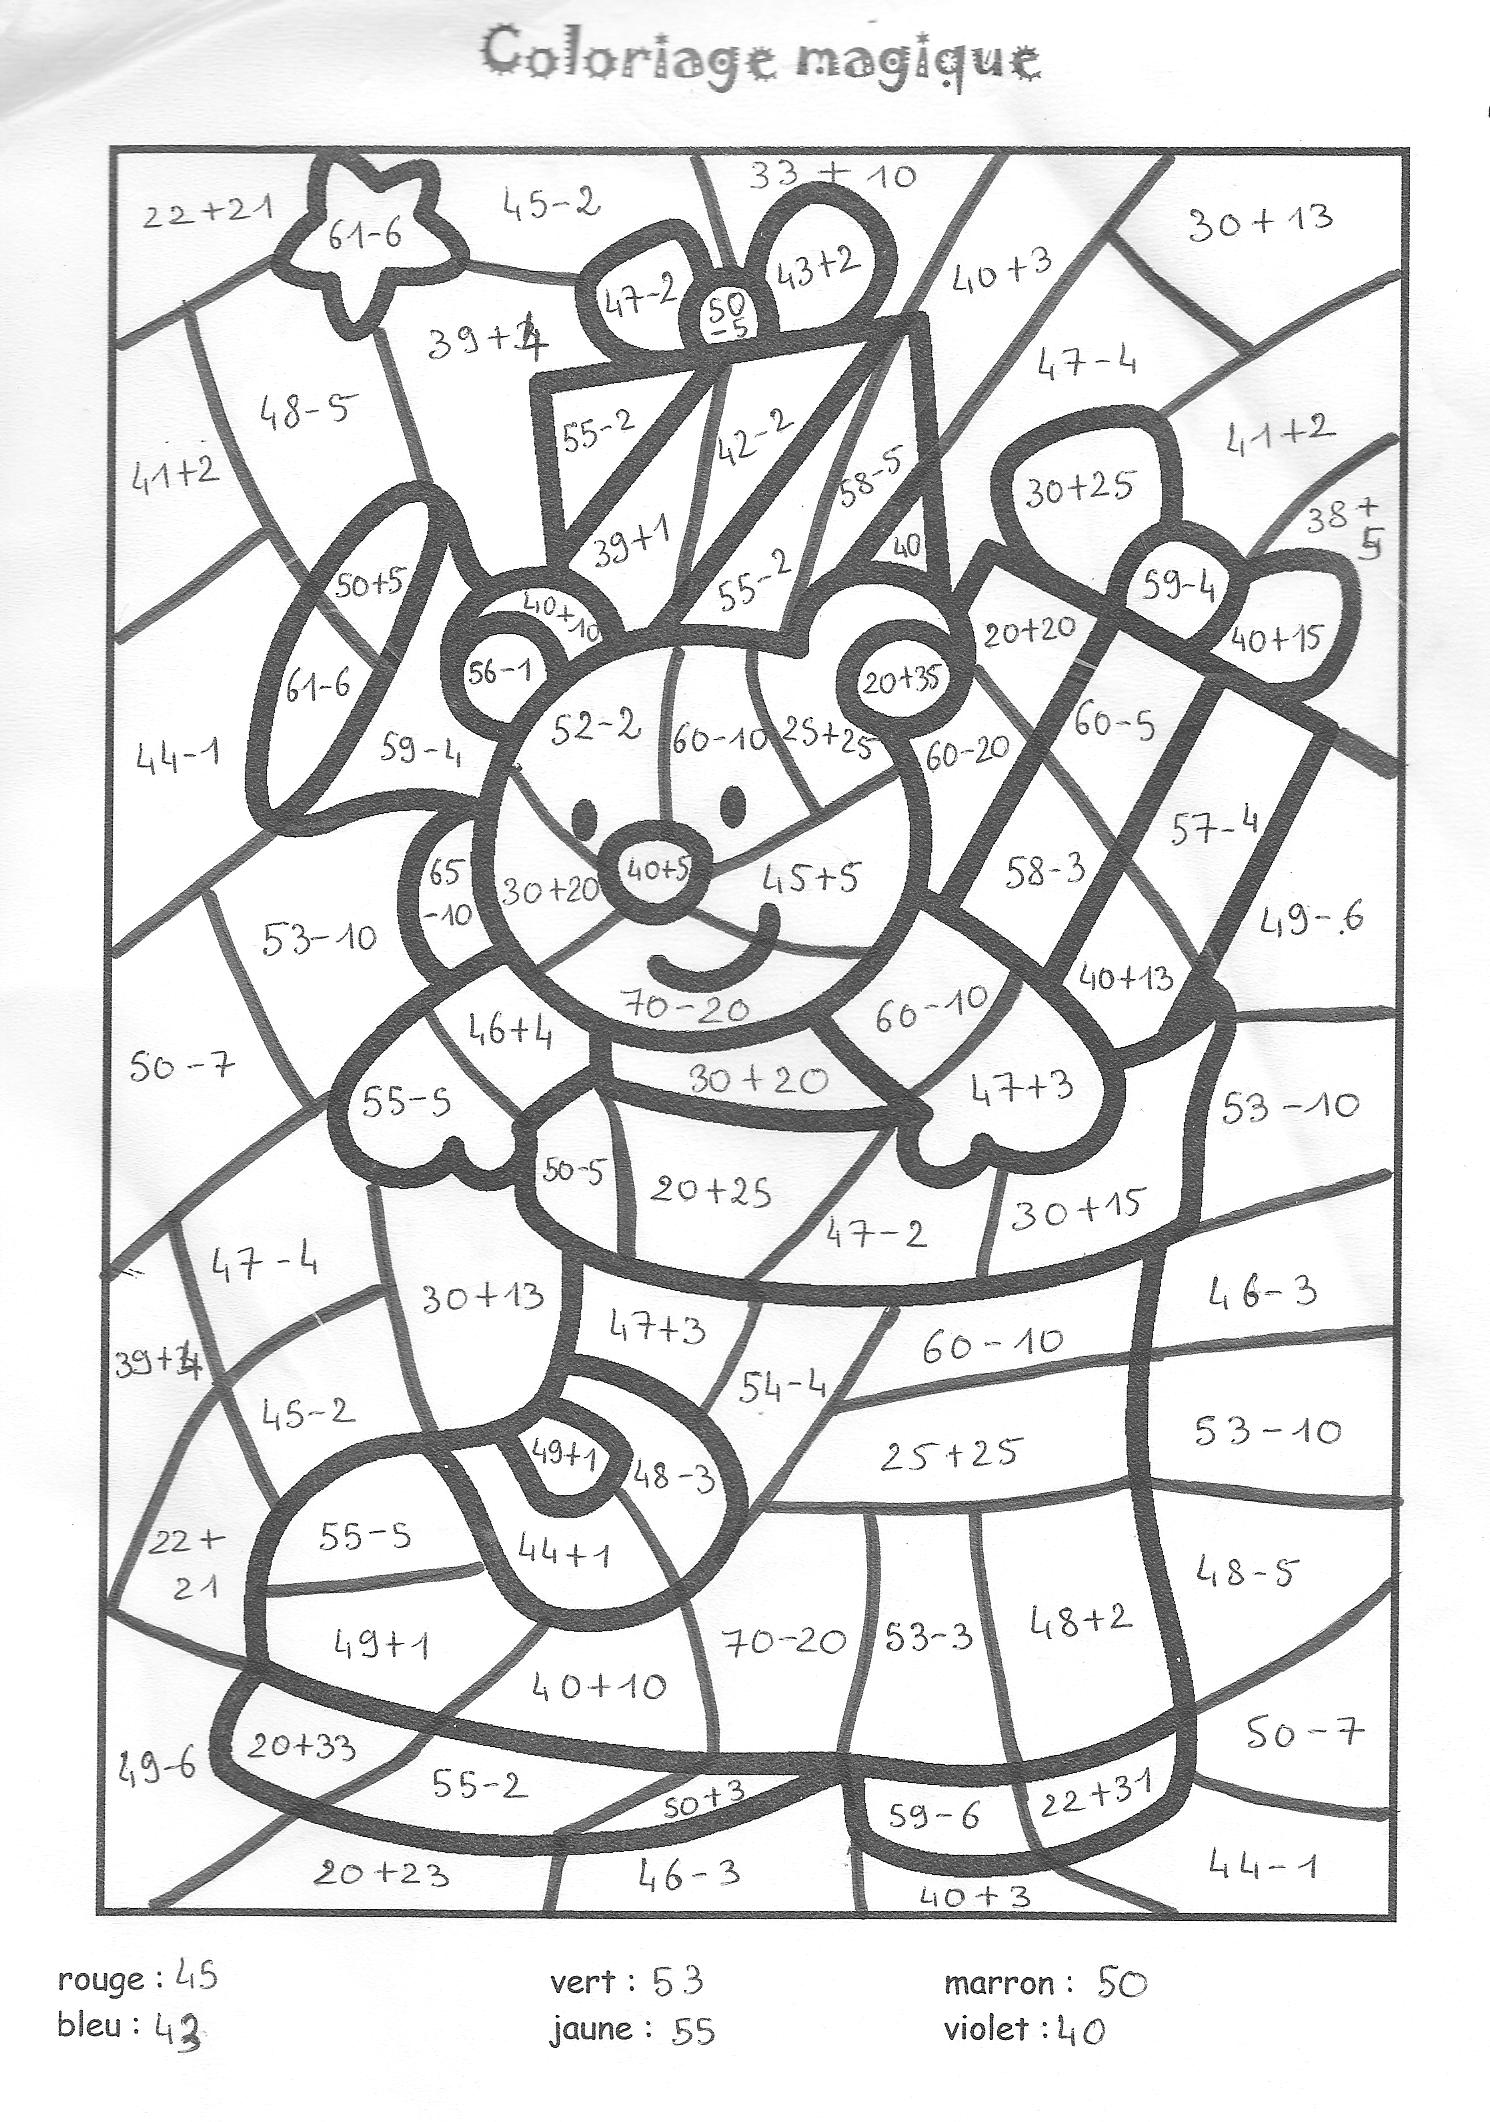 Charmant Coloriage Magique Vocabulaire Ce1 42 sur Coloriage Books for Coloriage Magique Vocabulaire Ce1